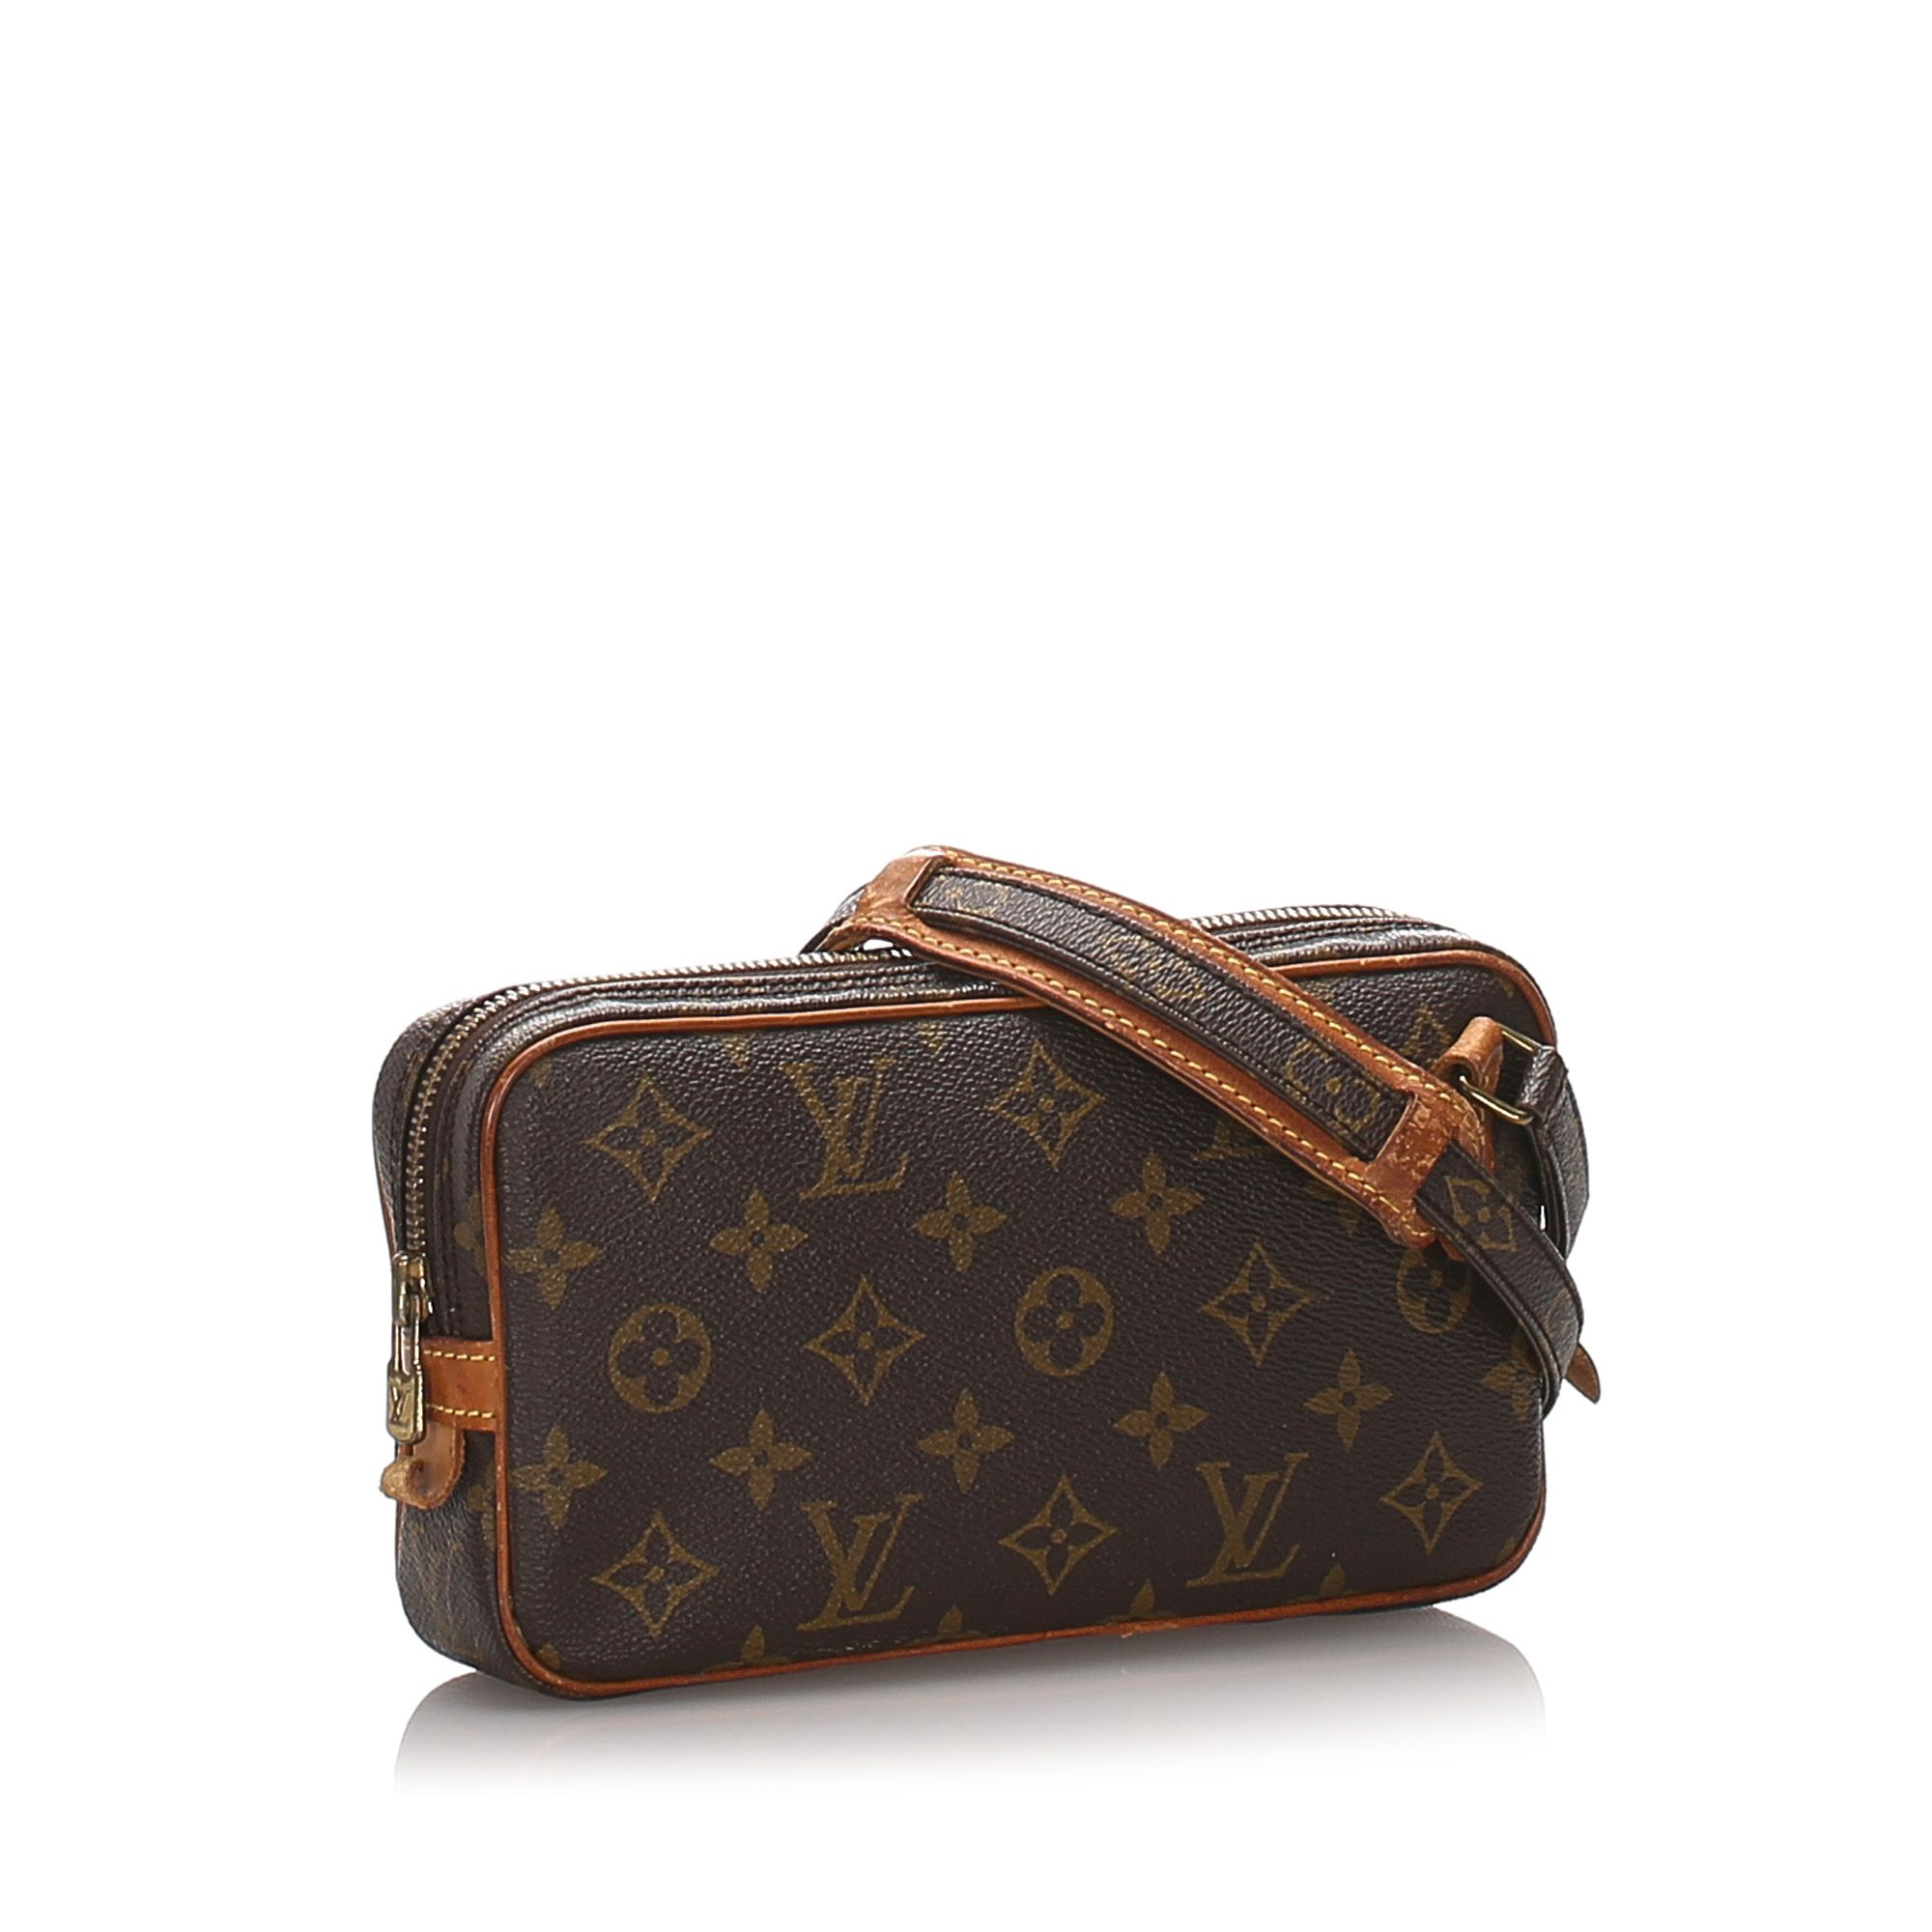 Vintage Louis Vuitton Monogram Marly Bandouliere Brown